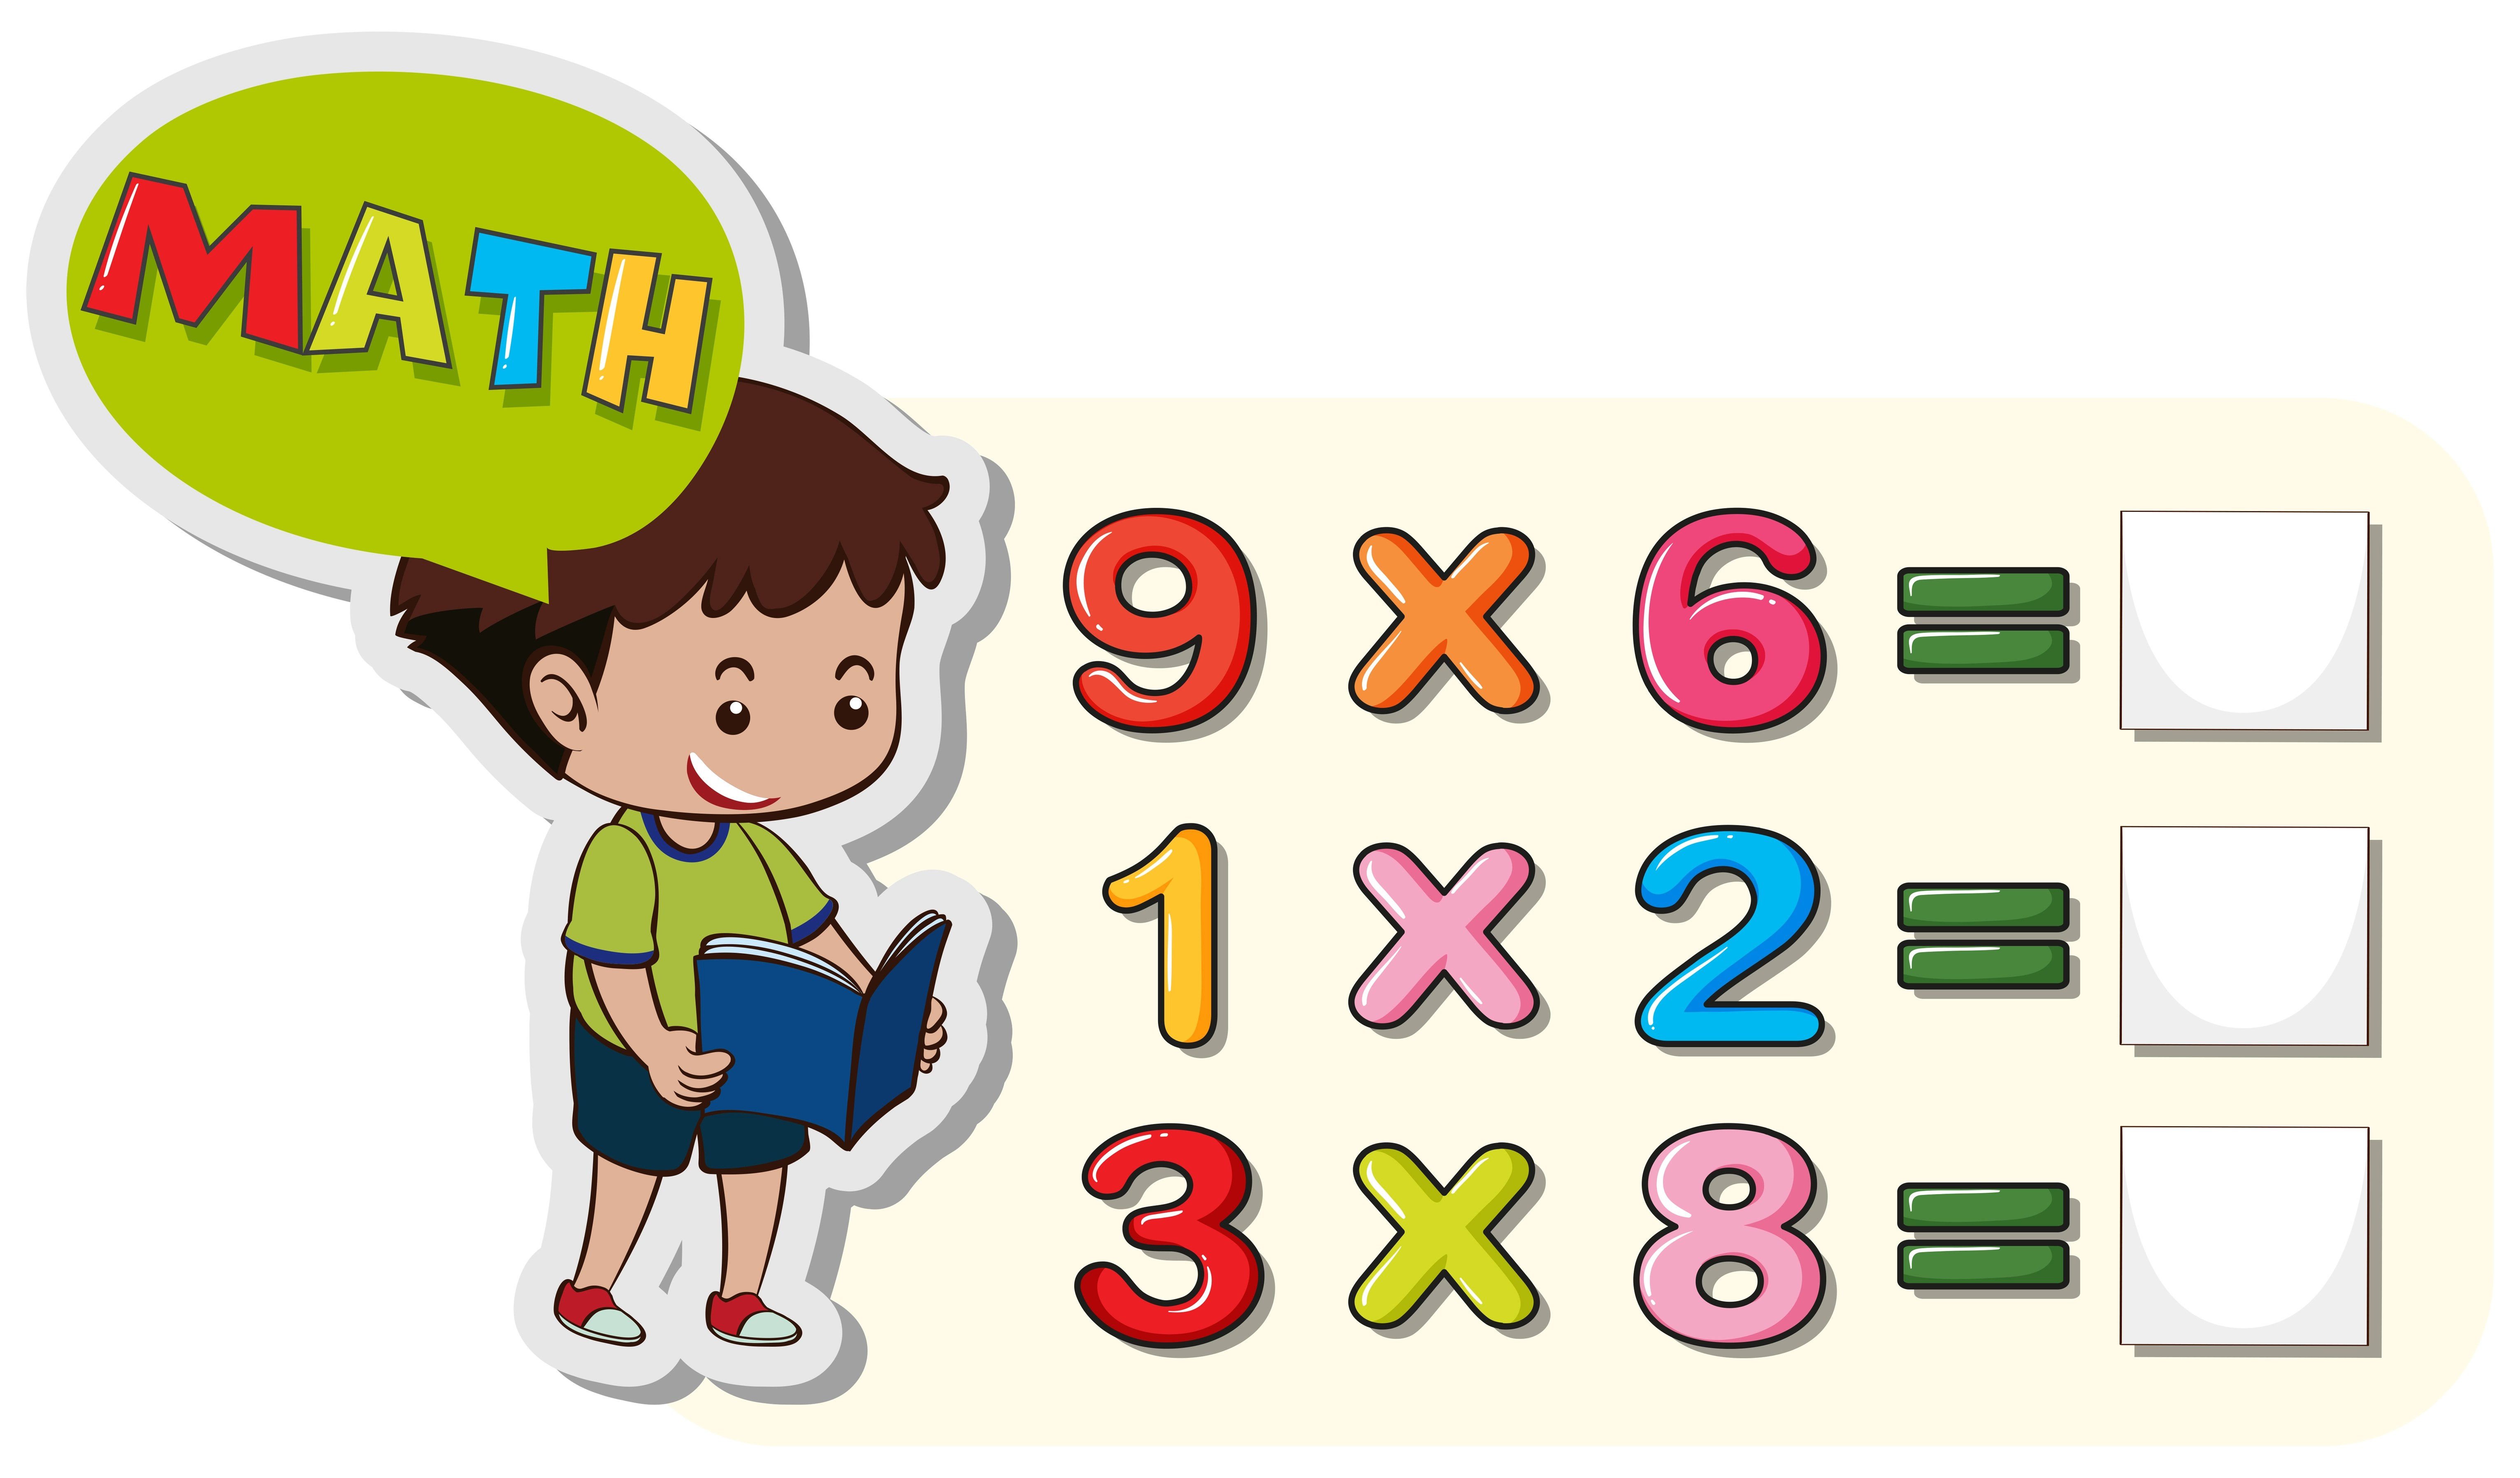 Math Worksheet Template With Boy And Multiplication